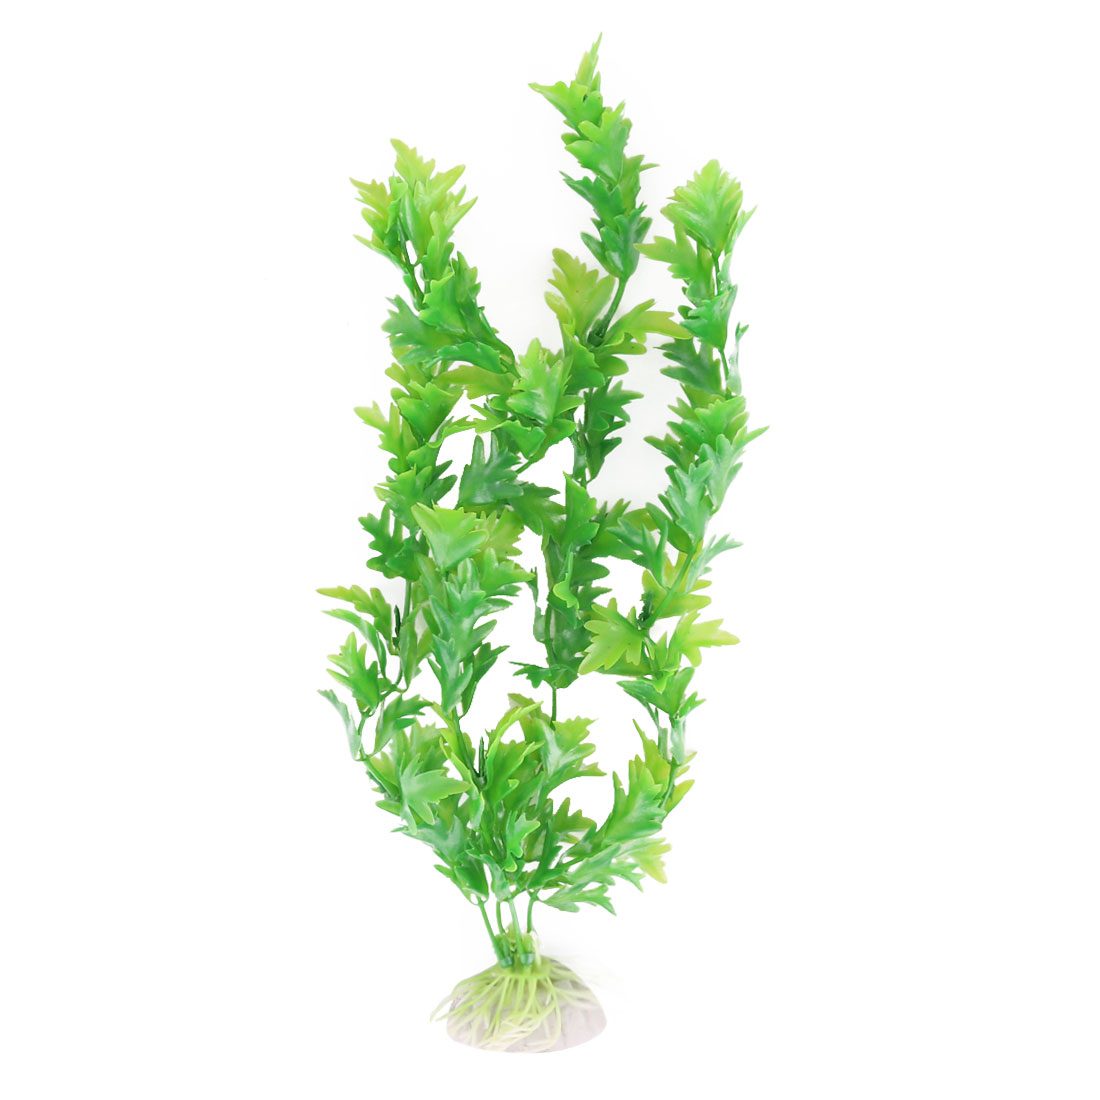 Plastic Plant Grass Fish Tank Decor Aquarium Ornament